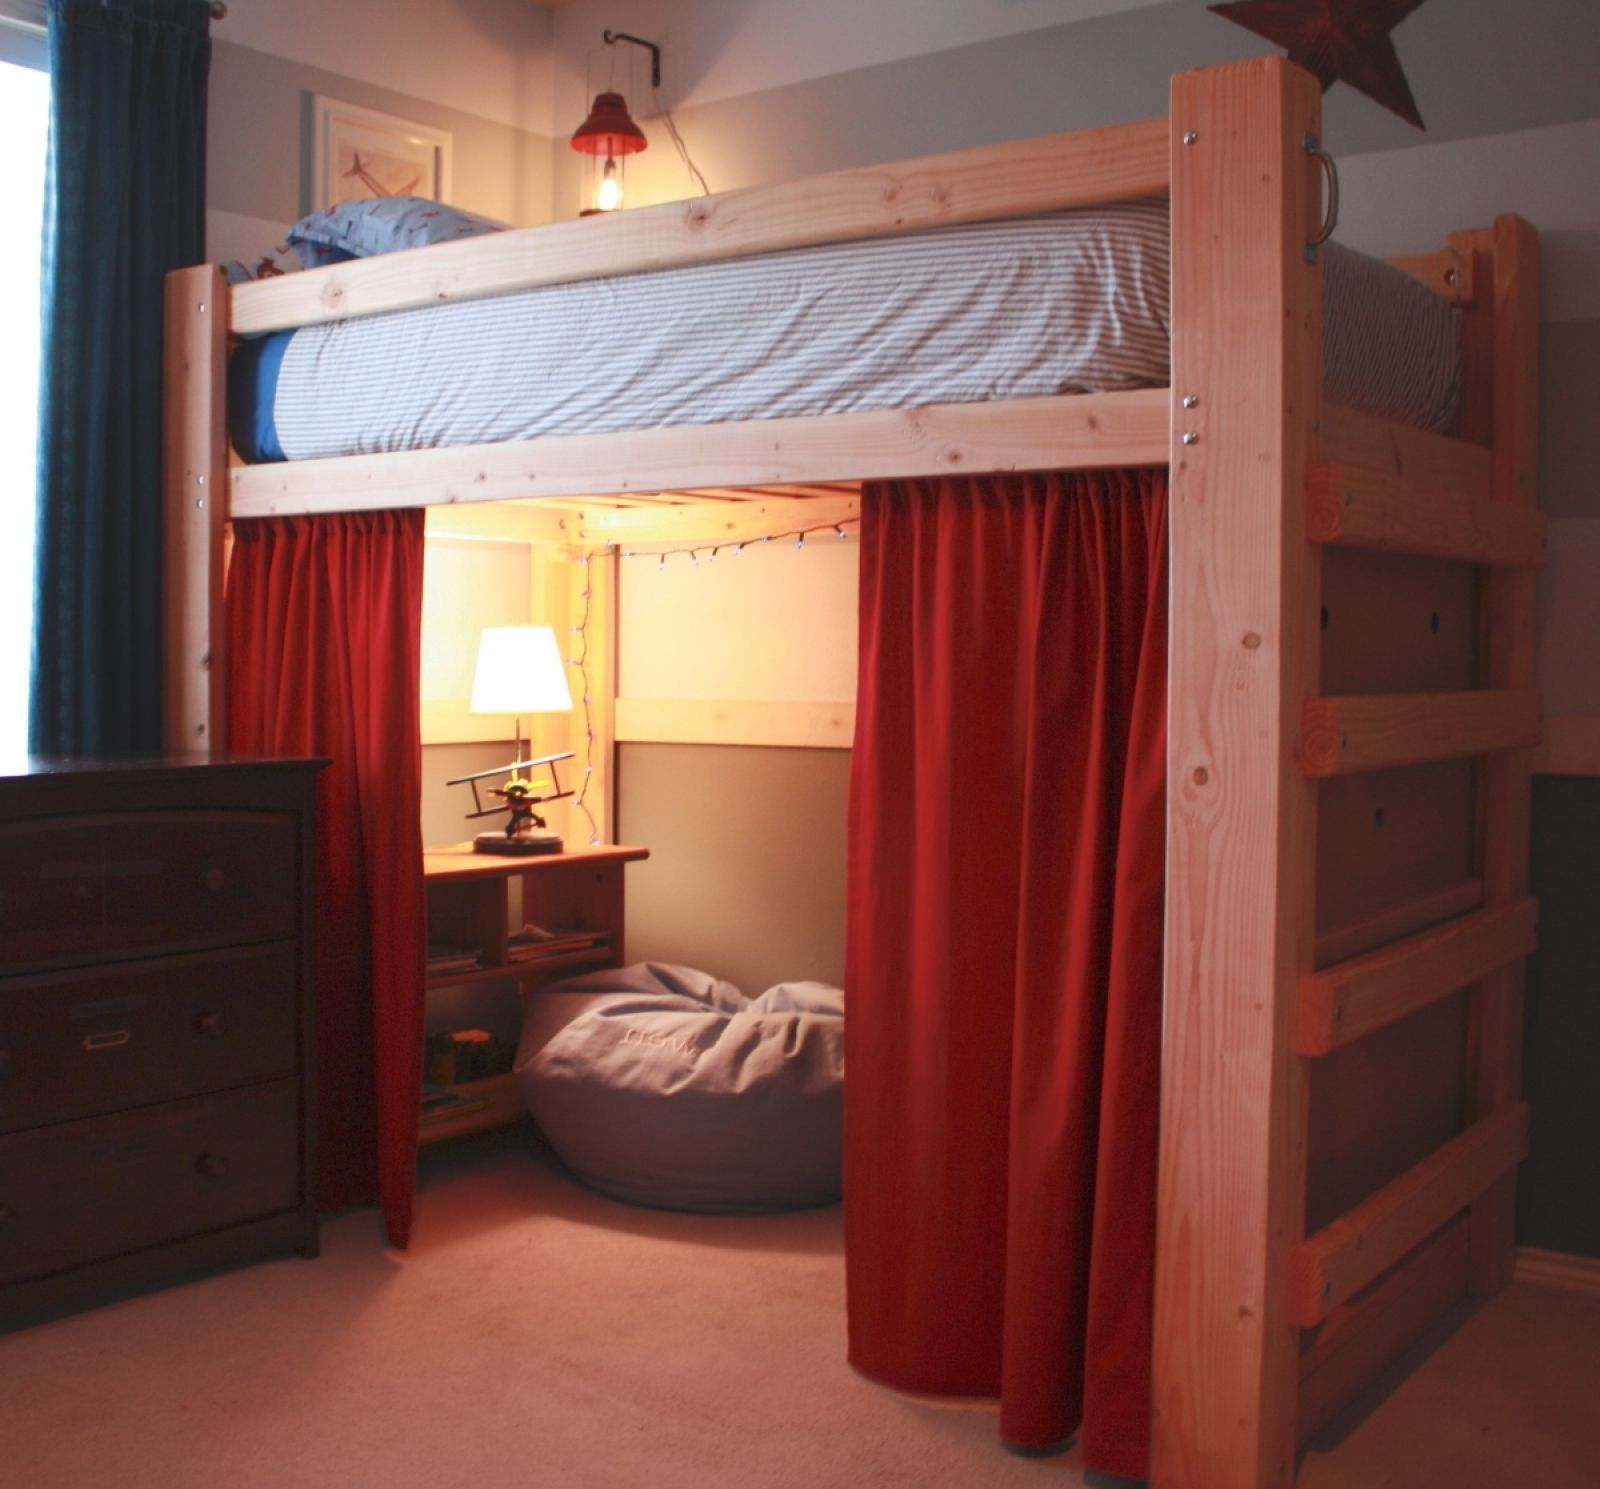 Genial Free Diy Full Size Loft Bed Plans Awesome Woodworking Ideas How To Build A  Full Size Loft Bed How To Build A Full Size Loft Bed